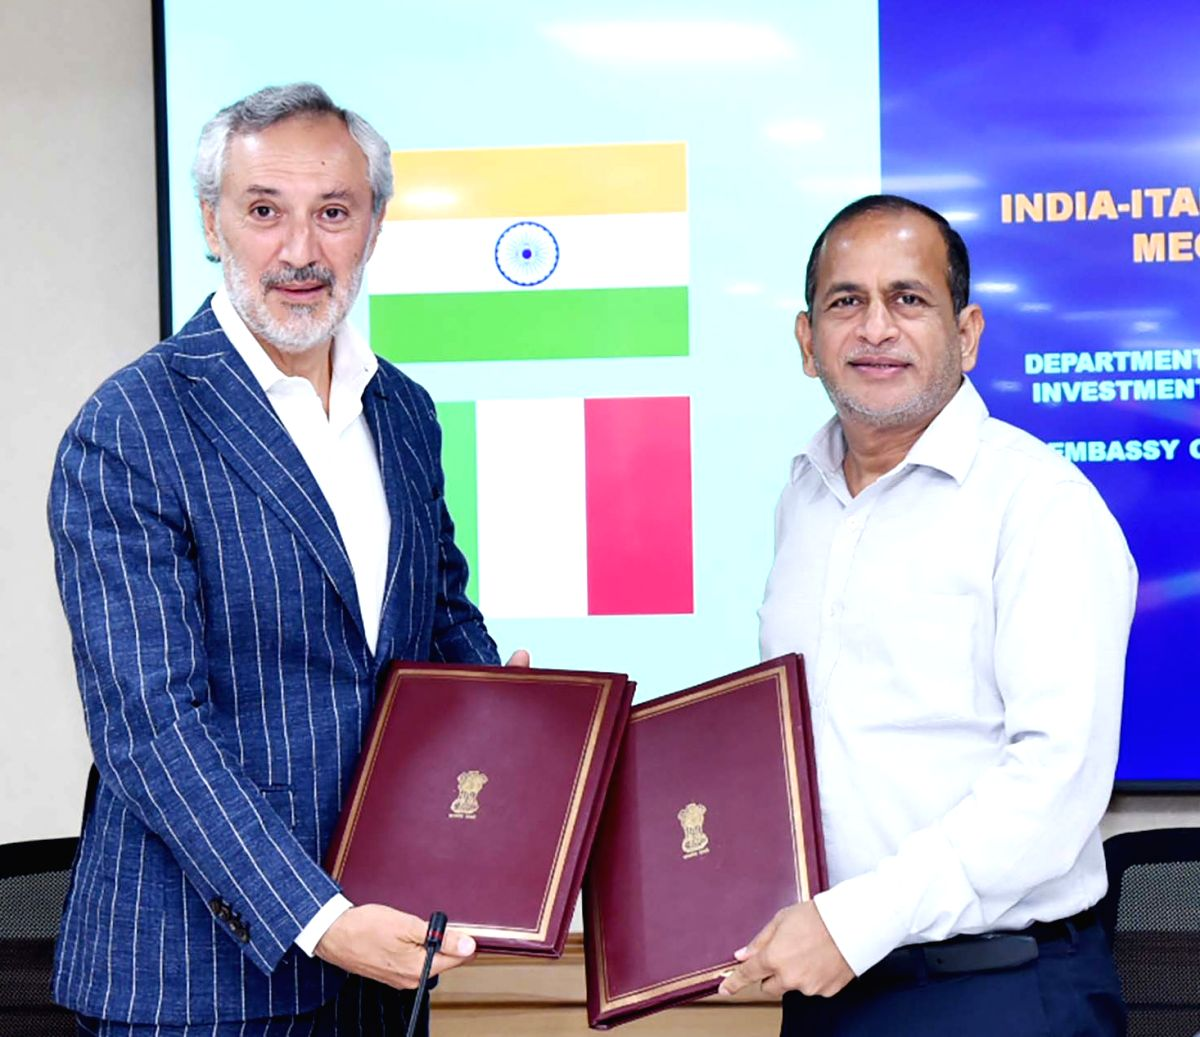 New Delhi: DPIIT Secretary Ramesh Abhishek and Ambassador of Italy to India Lorenzo Angeloni exchangs the documents on setting up fast track mechanism for companies and investors, in New Delhi on July 16, 2019. (Photo: IANS/PIB)